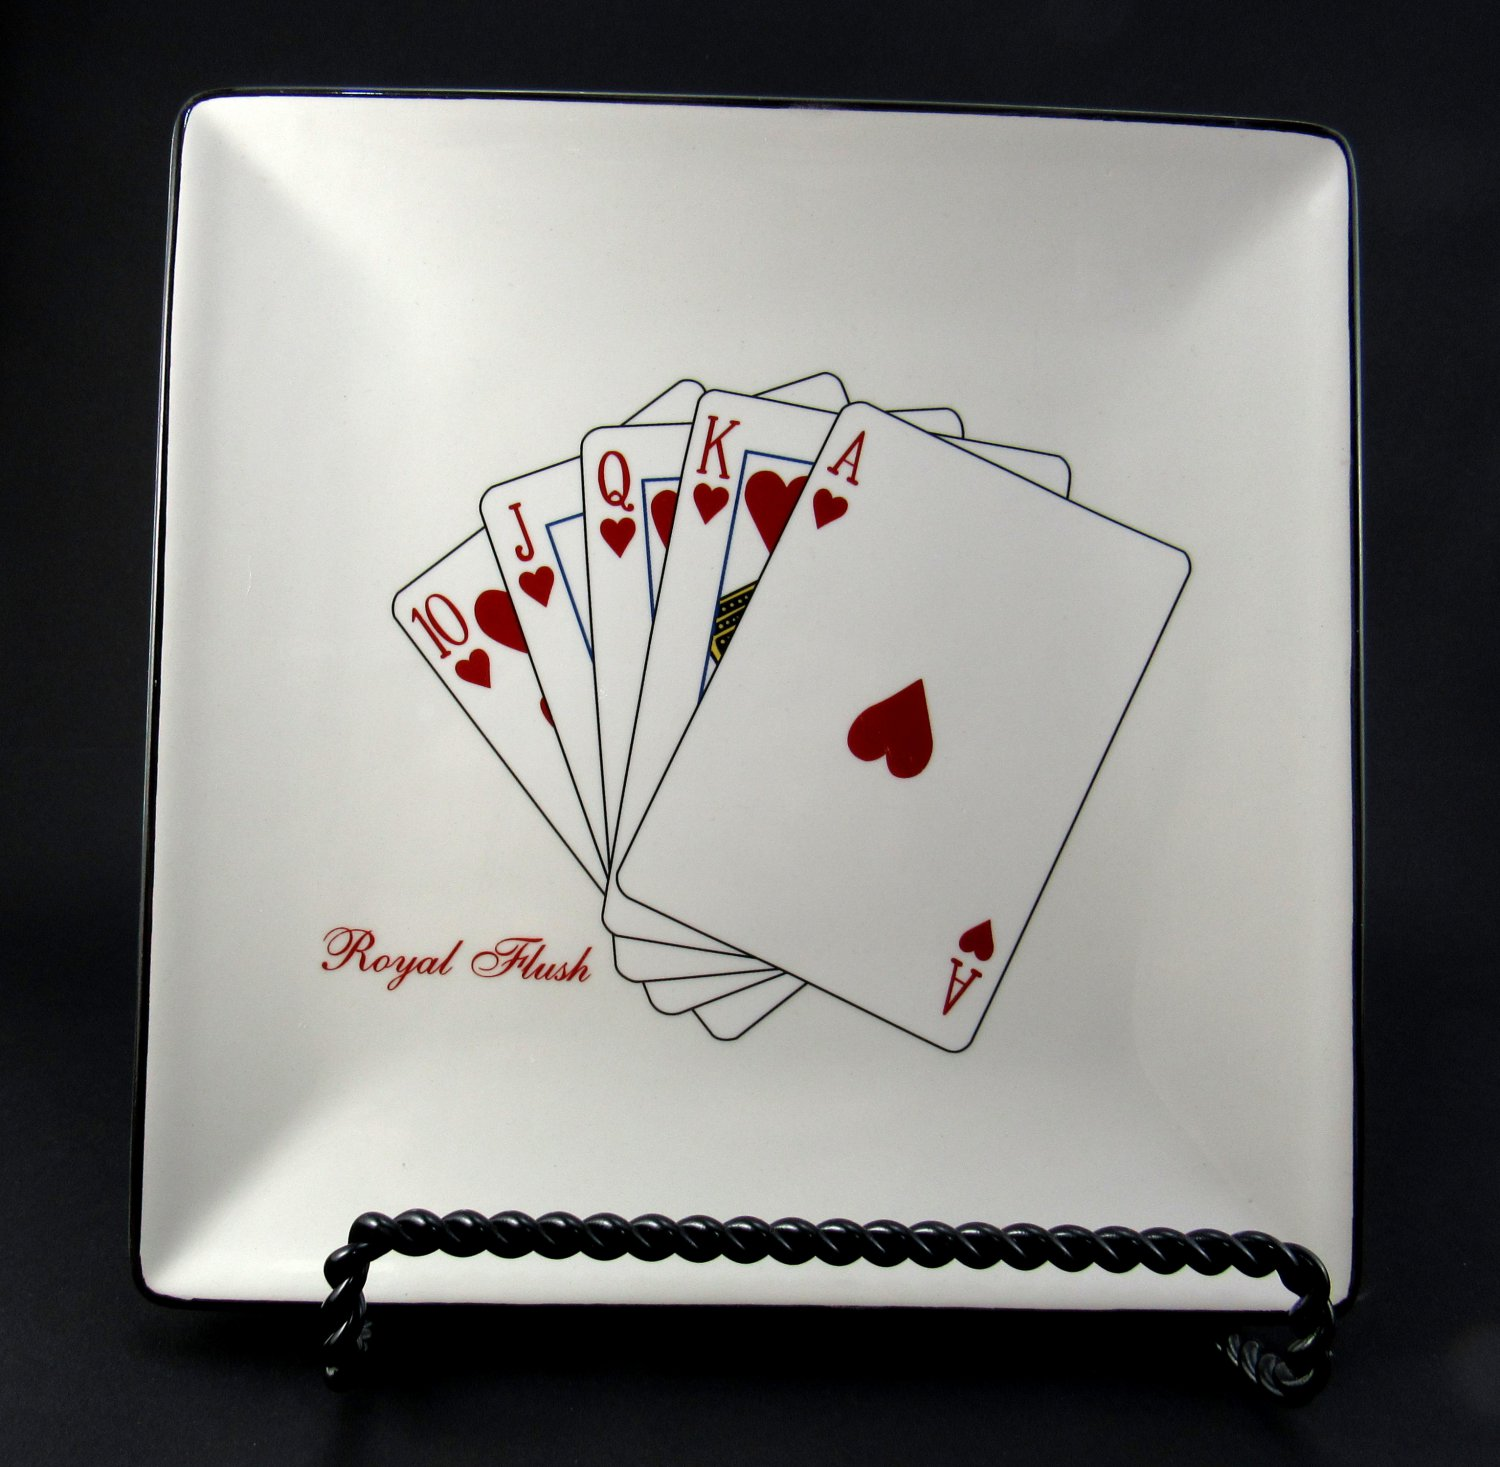 American Atelier Square Casino Royale Salad Plate Playing Card Design 7 1/2 Inches